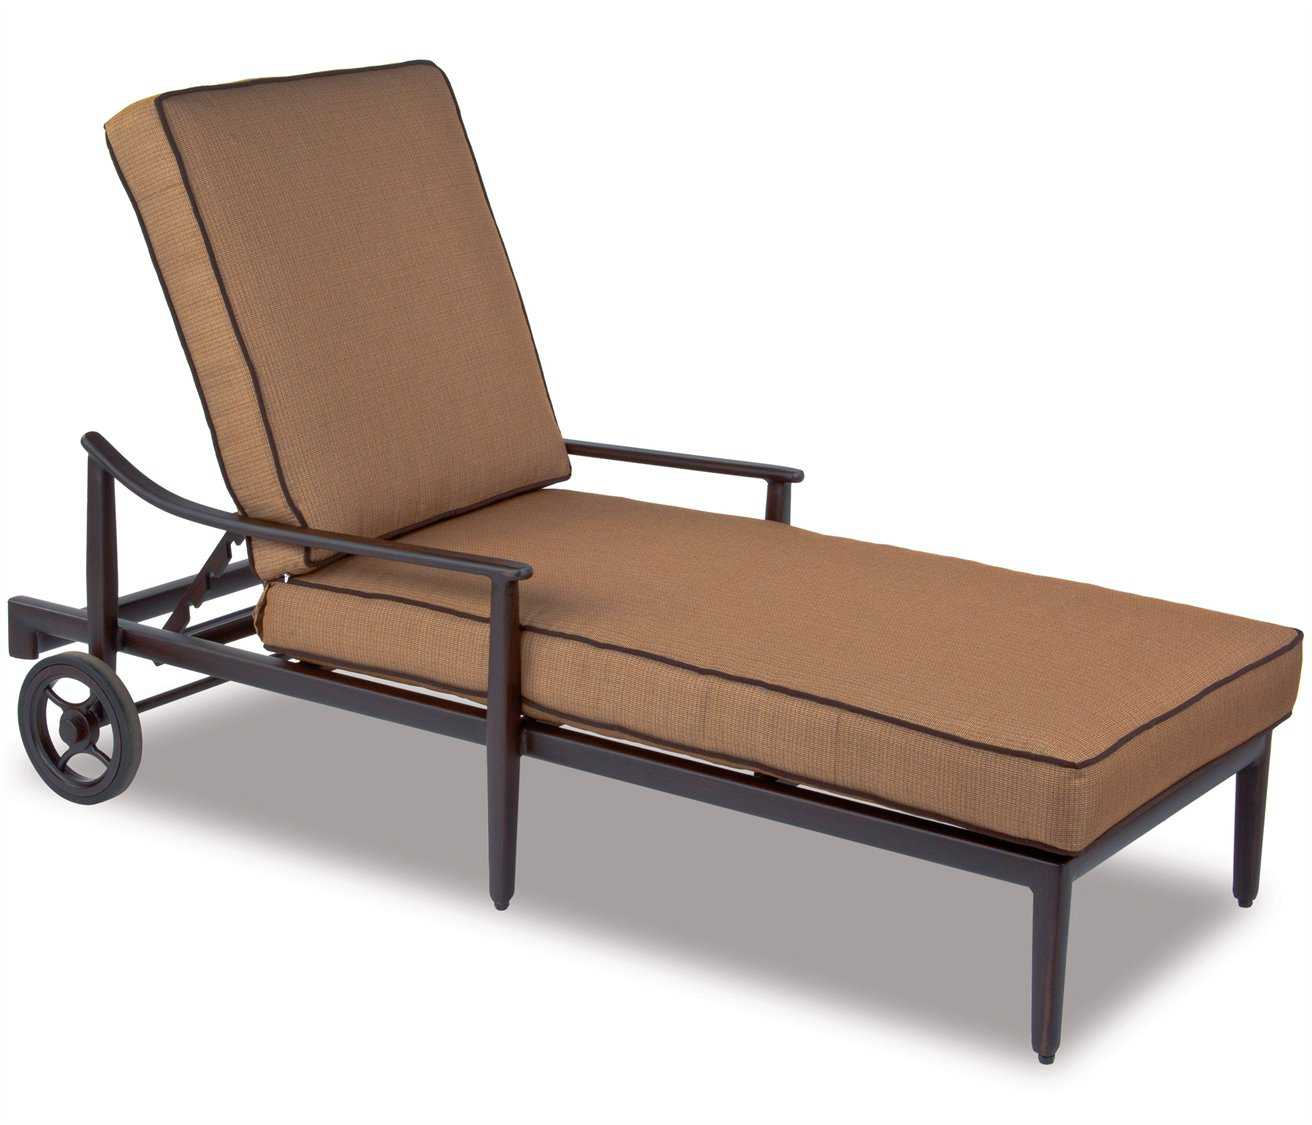 Cast classics sutton cast aluminum cushion chaise lounge for Cast aluminum chaise